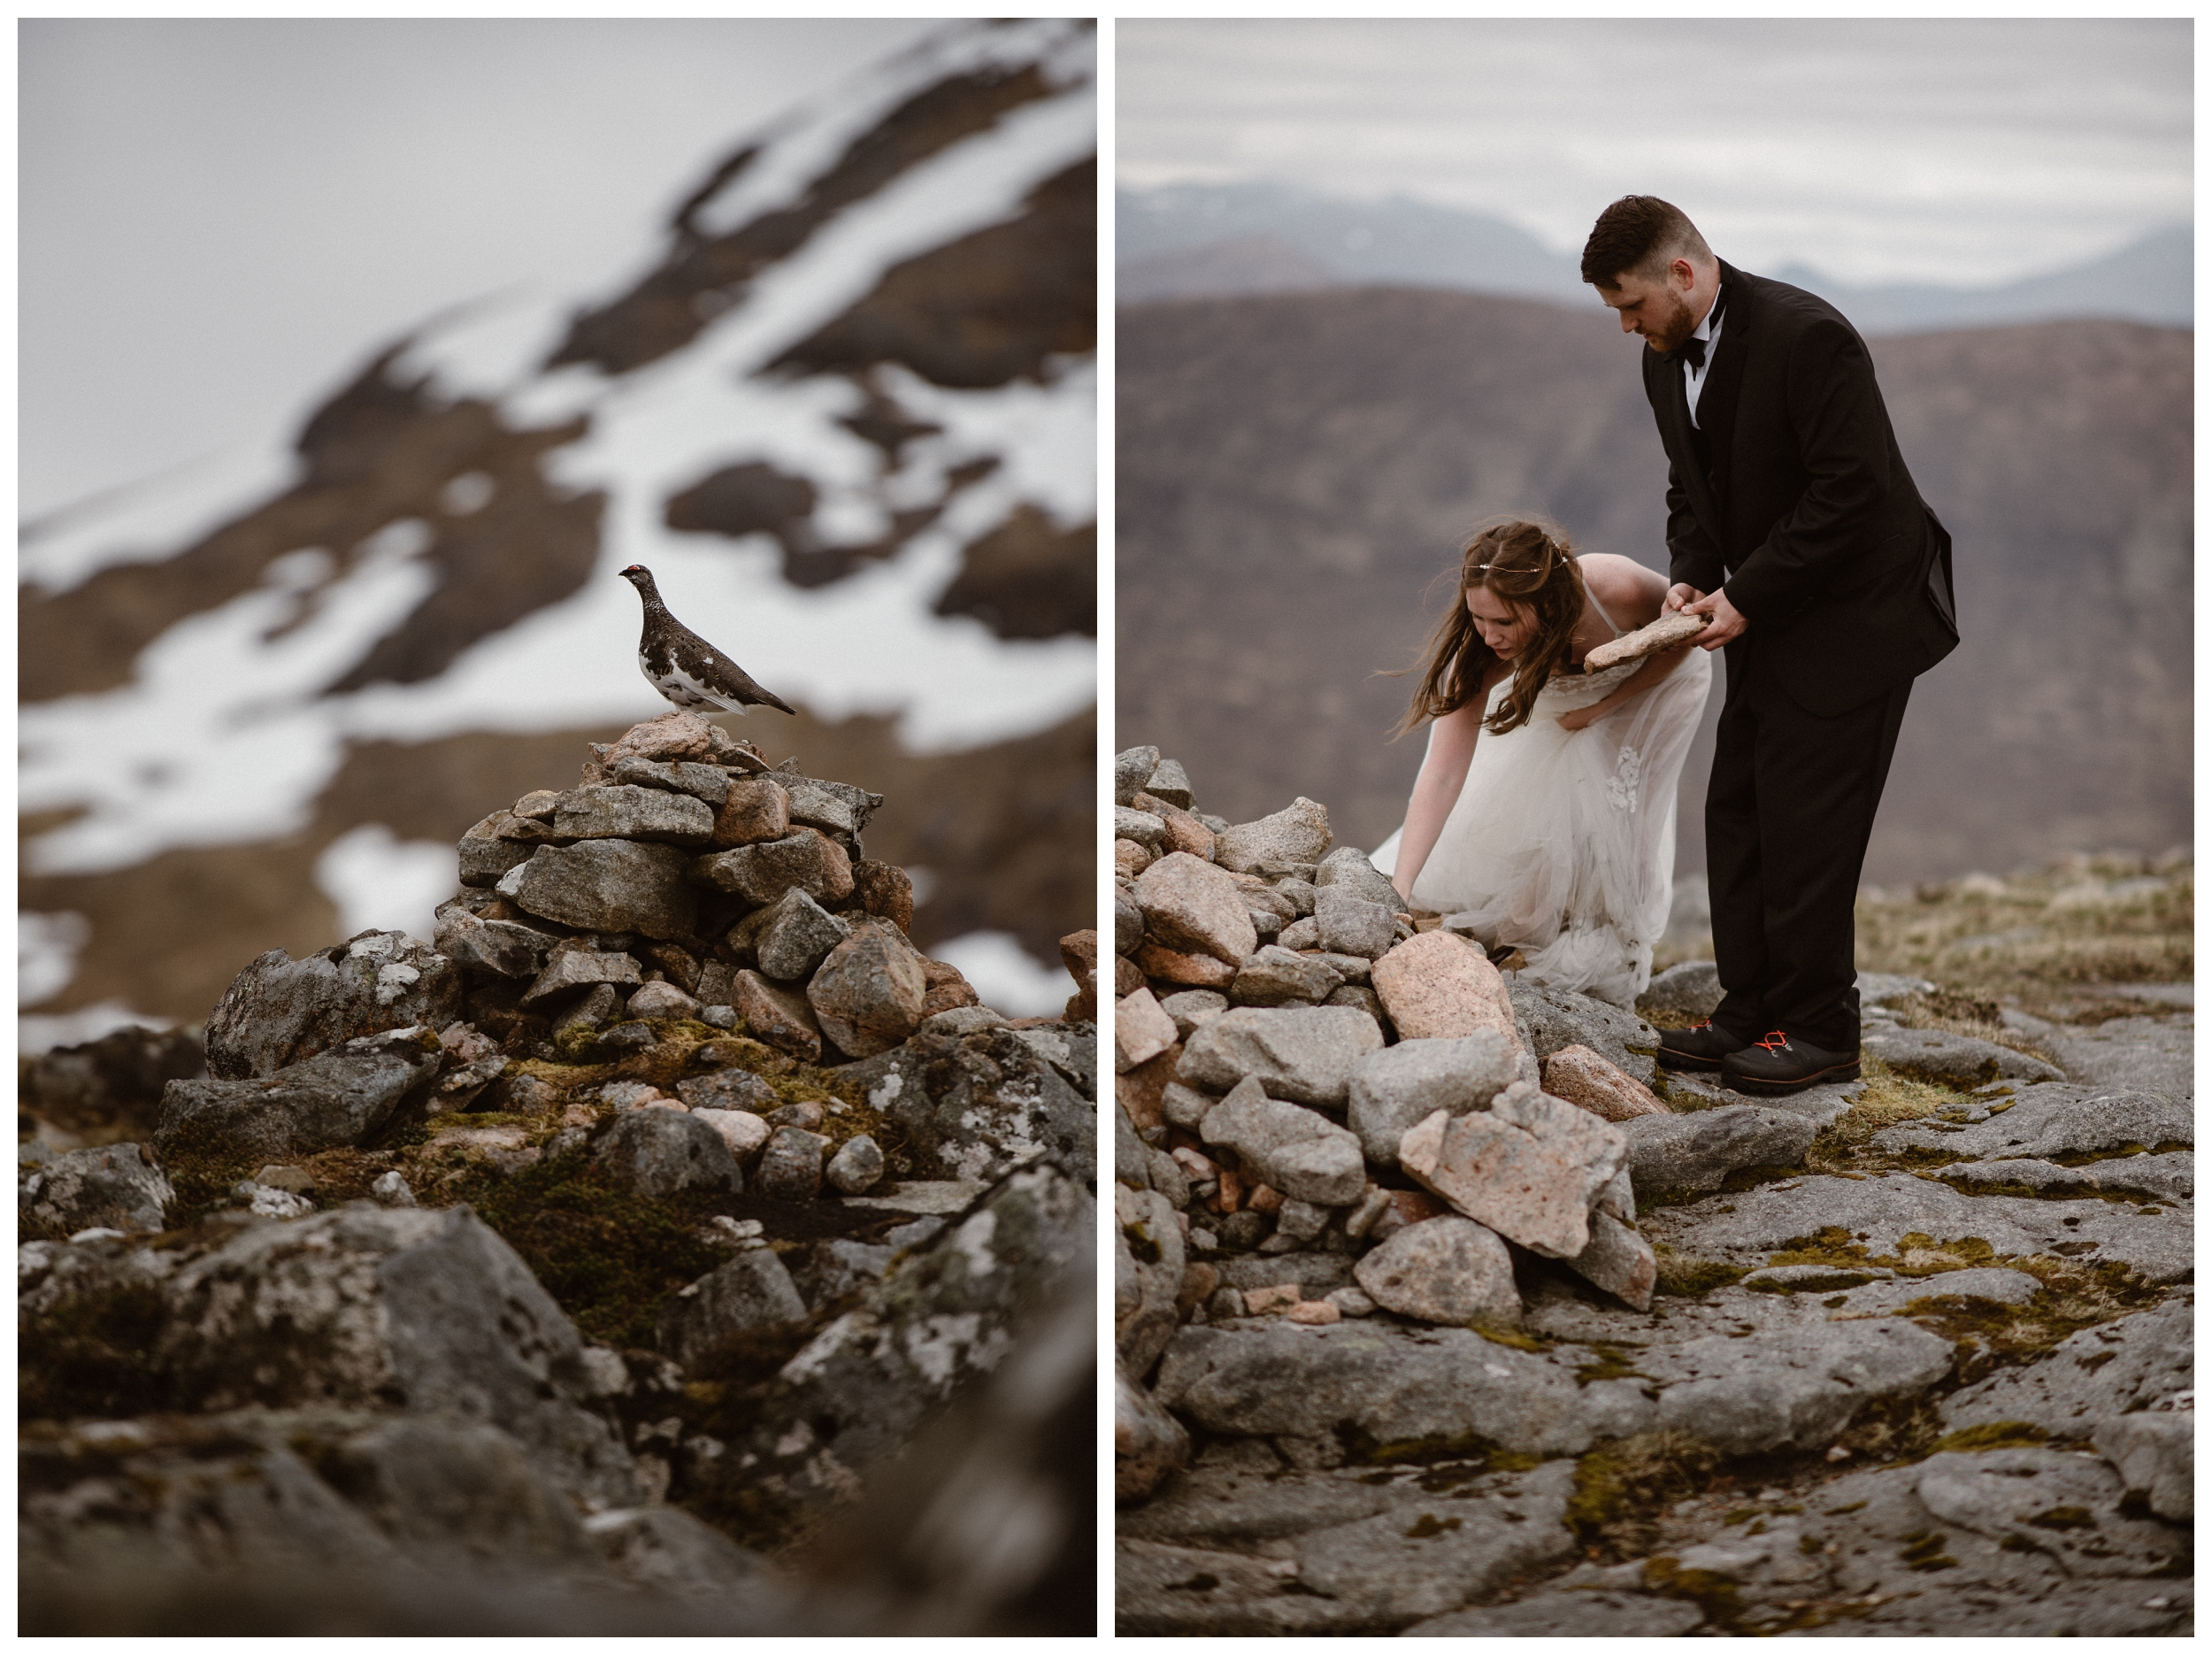 Only a ptarmigan was a witness to Elissa and Daniel's marriage vows. After their ceremony in the Scottish Highlands, outside Glencoe, they added their own stones to a cairn. Photo by Maddie Mae, Adventure Instead.